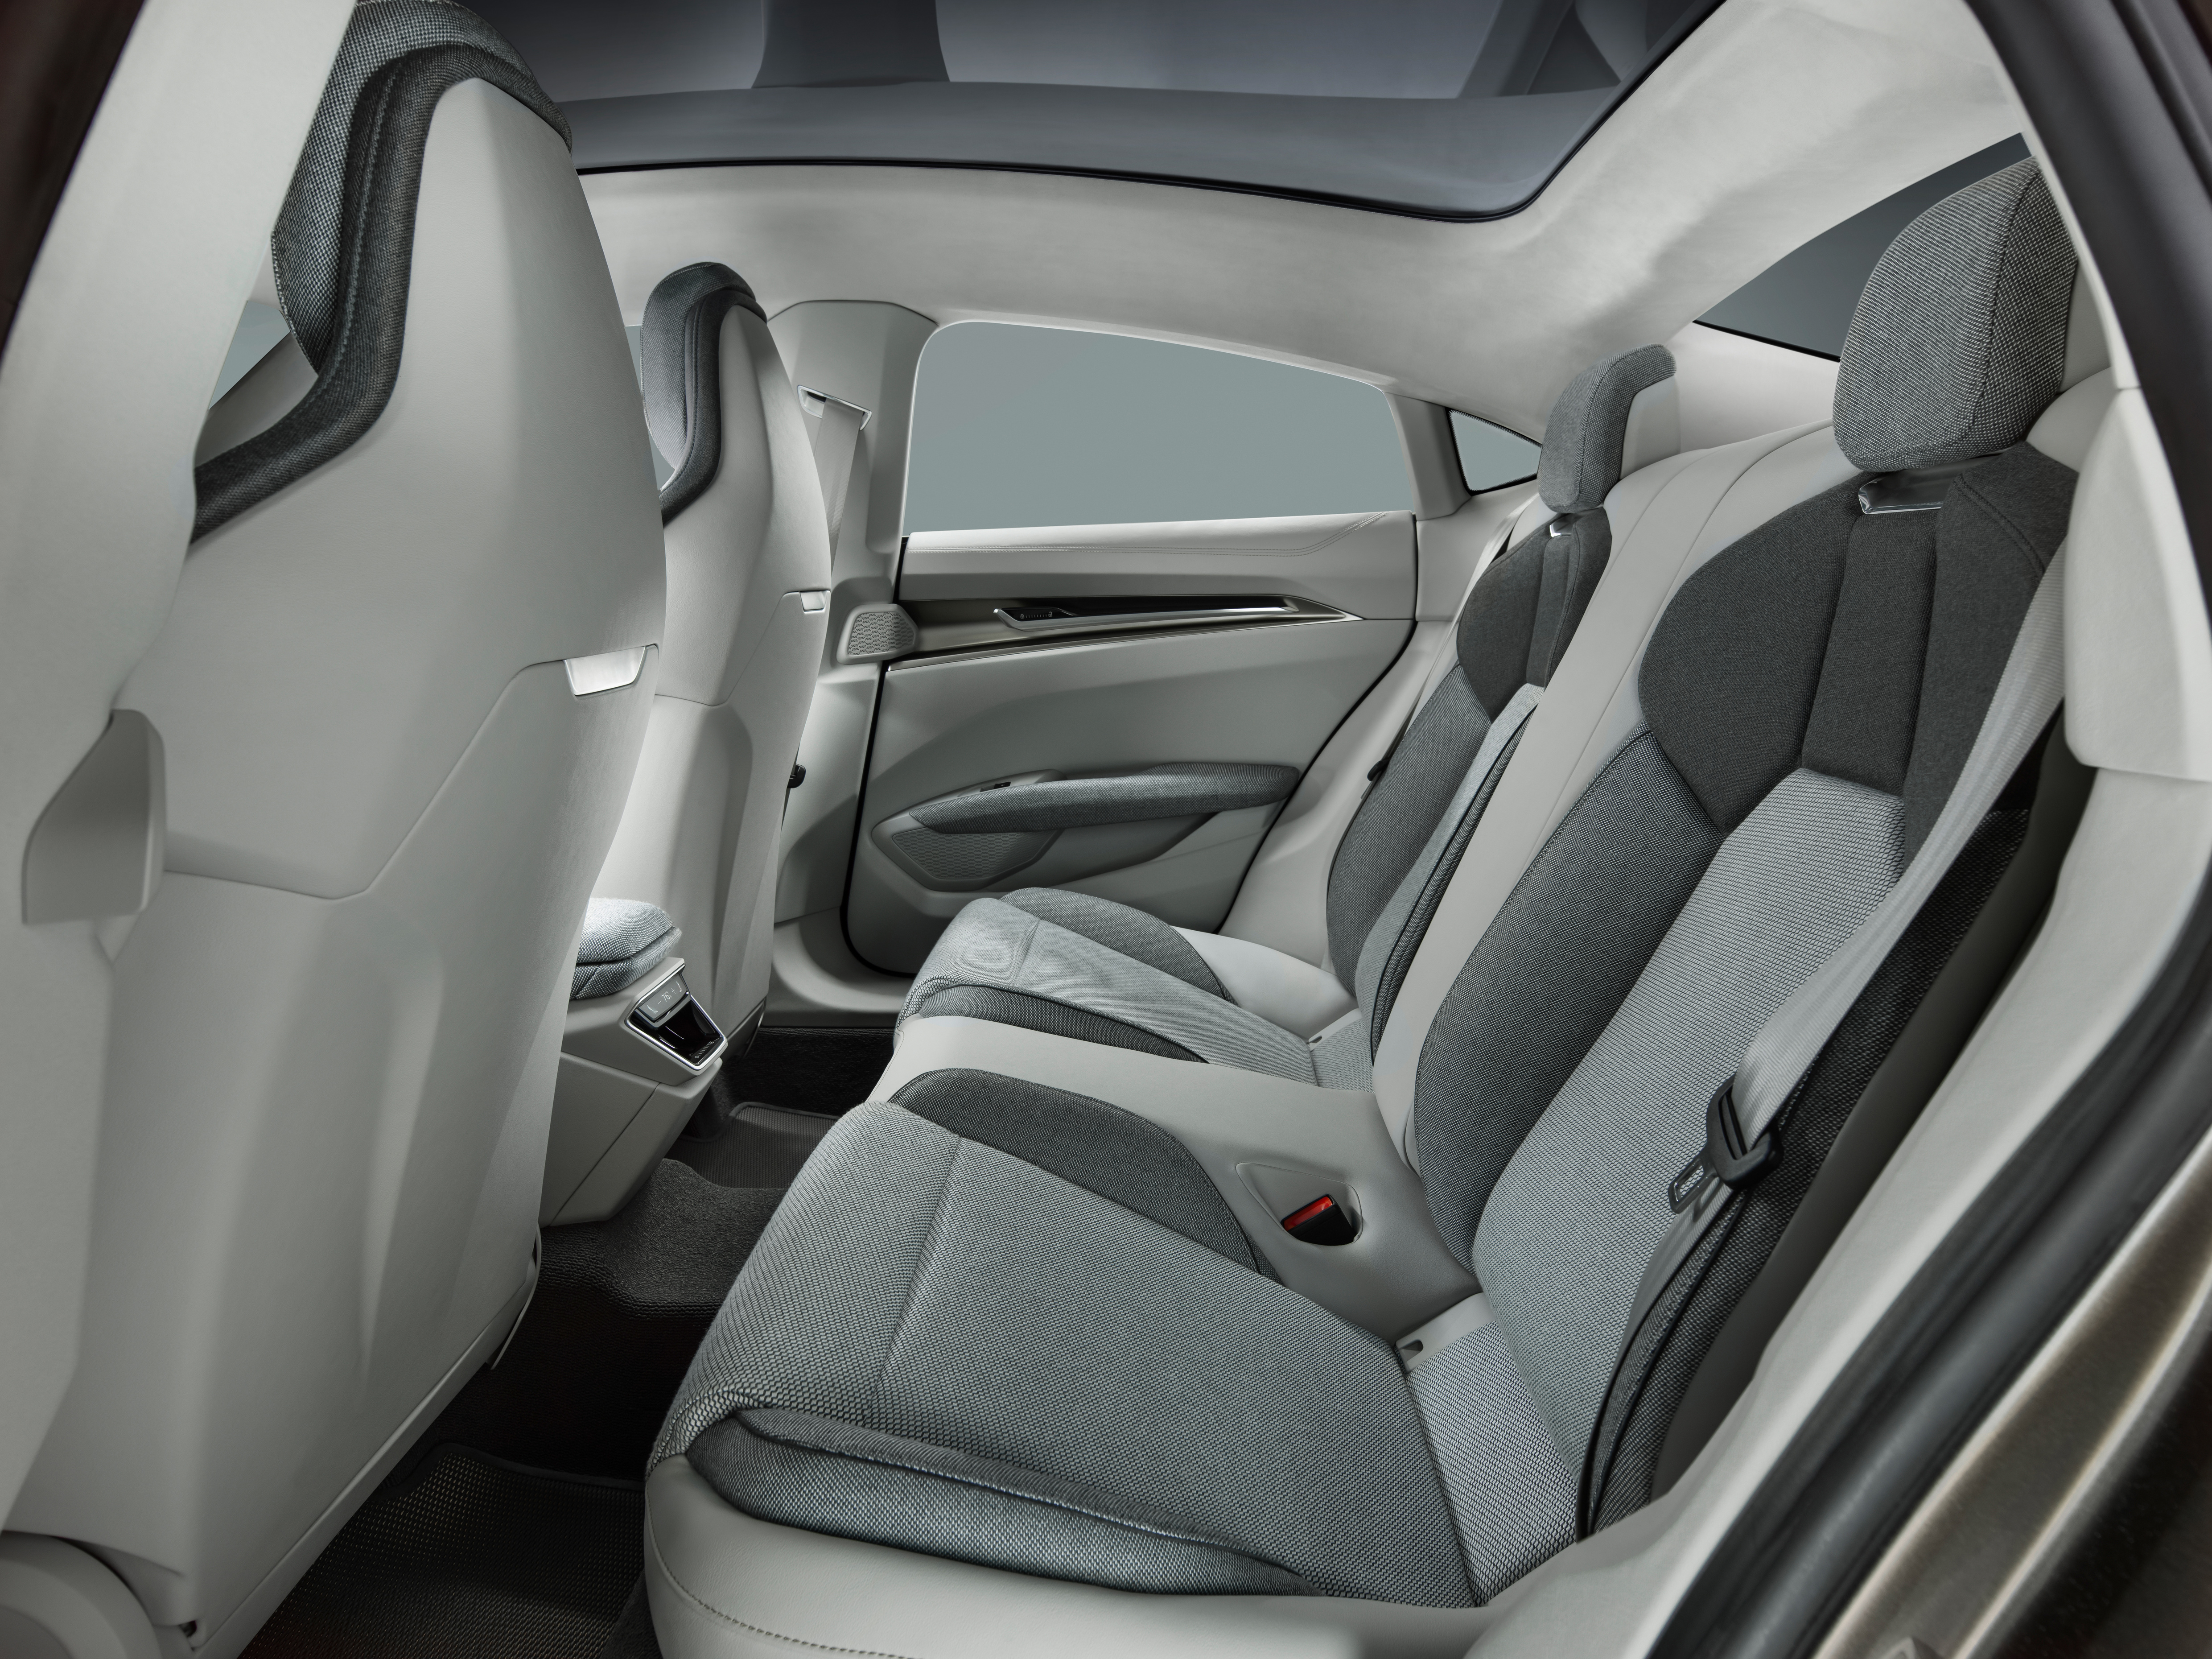 URBAN BLACK /& GREY FAUX LEATHER SEAT COVER for VW T-ROC 17-ON